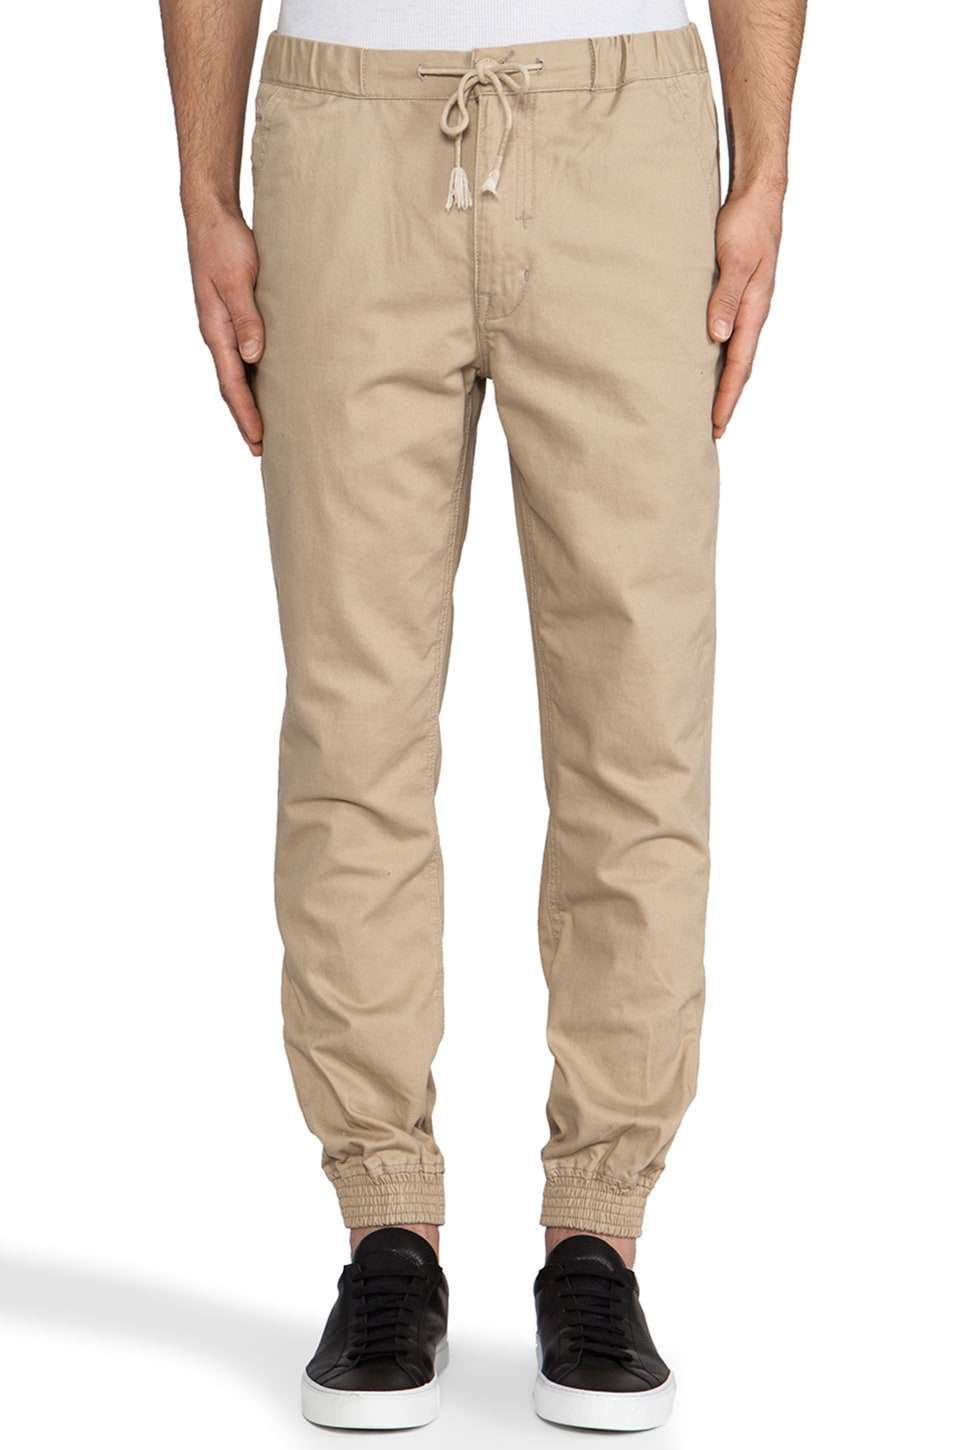 Staple Vito Cuff Pant in Khaki